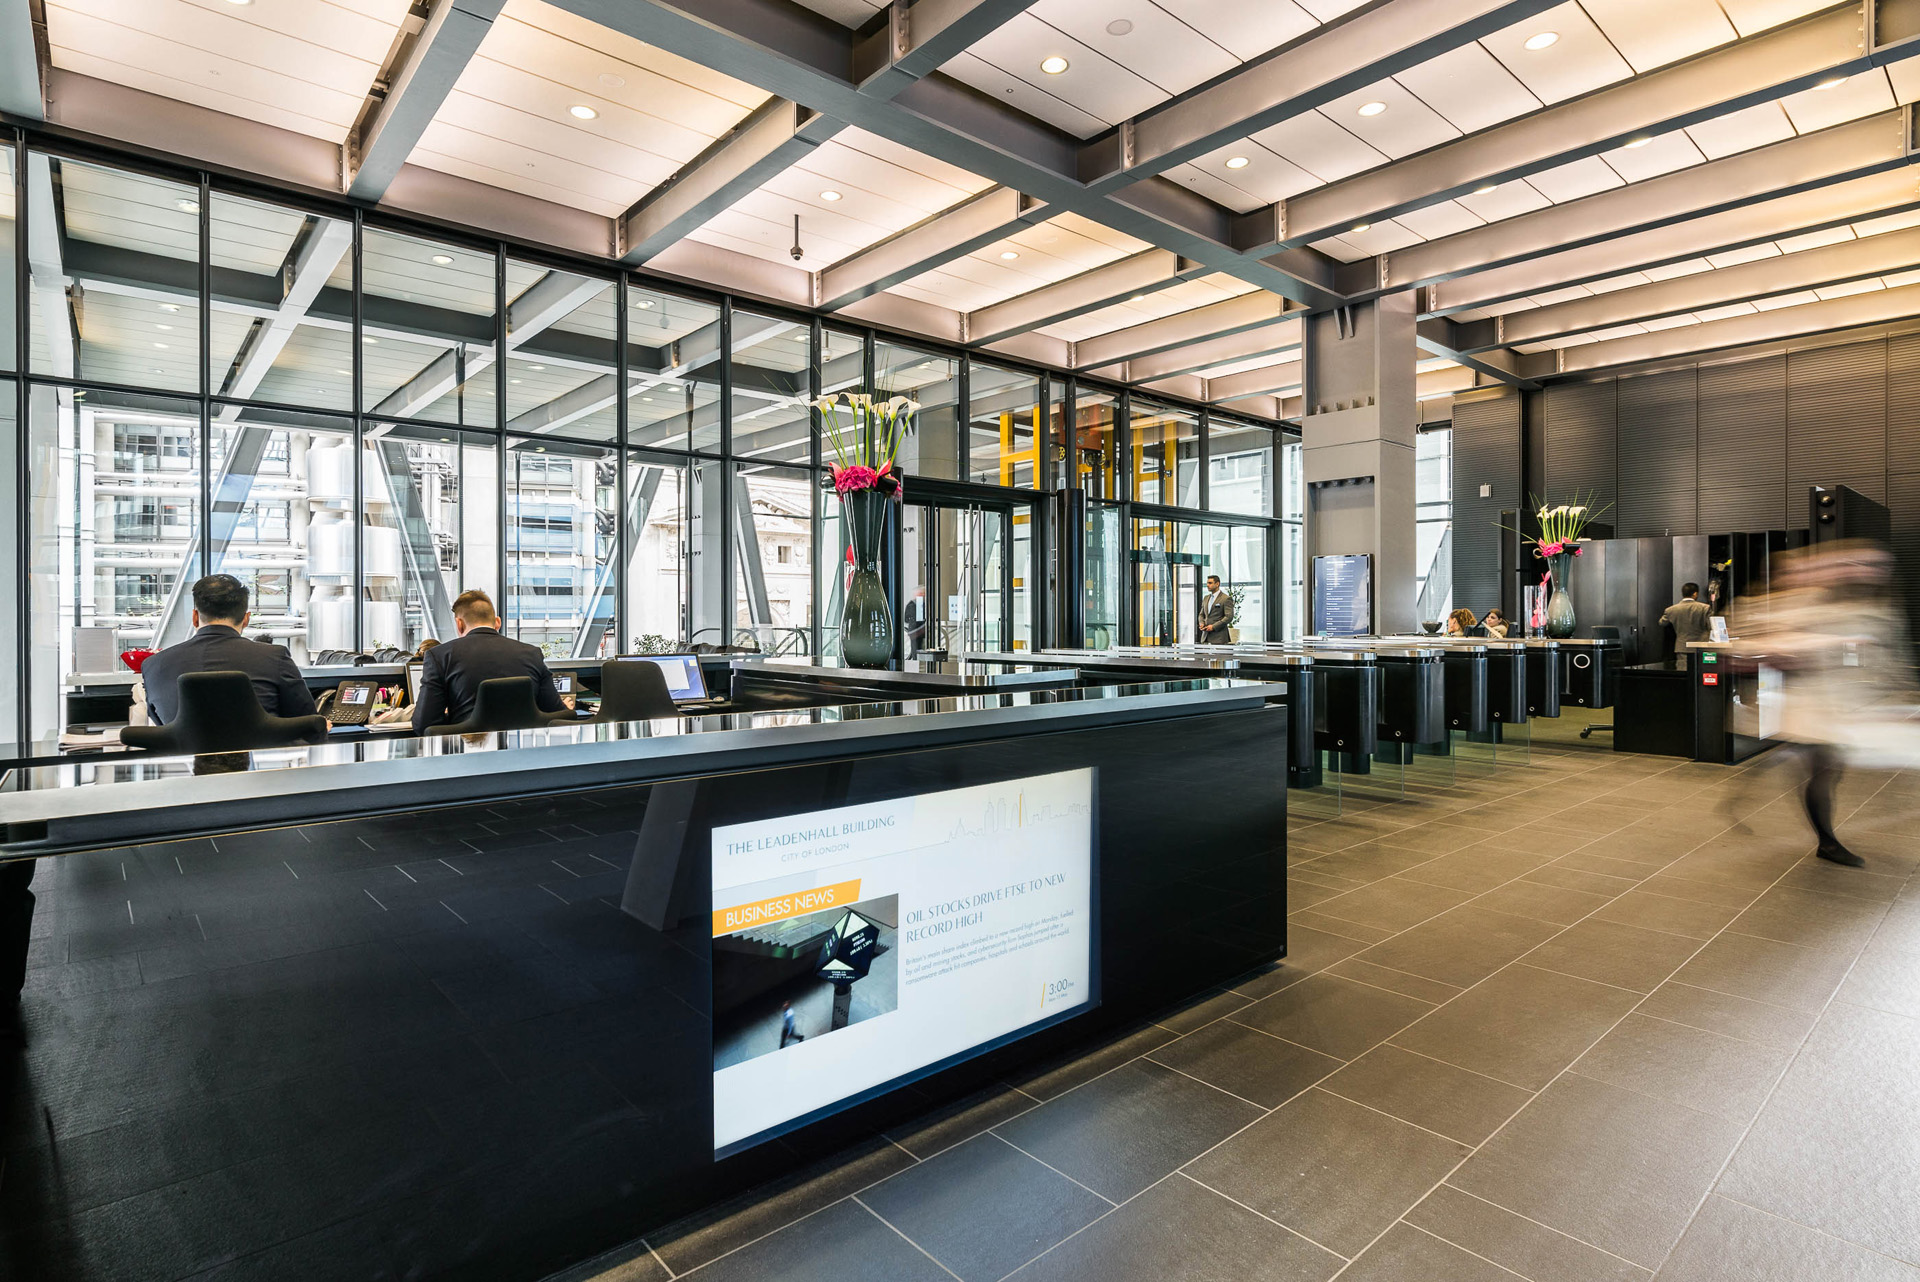 Live business news on digital signage at The Leadenhall Building